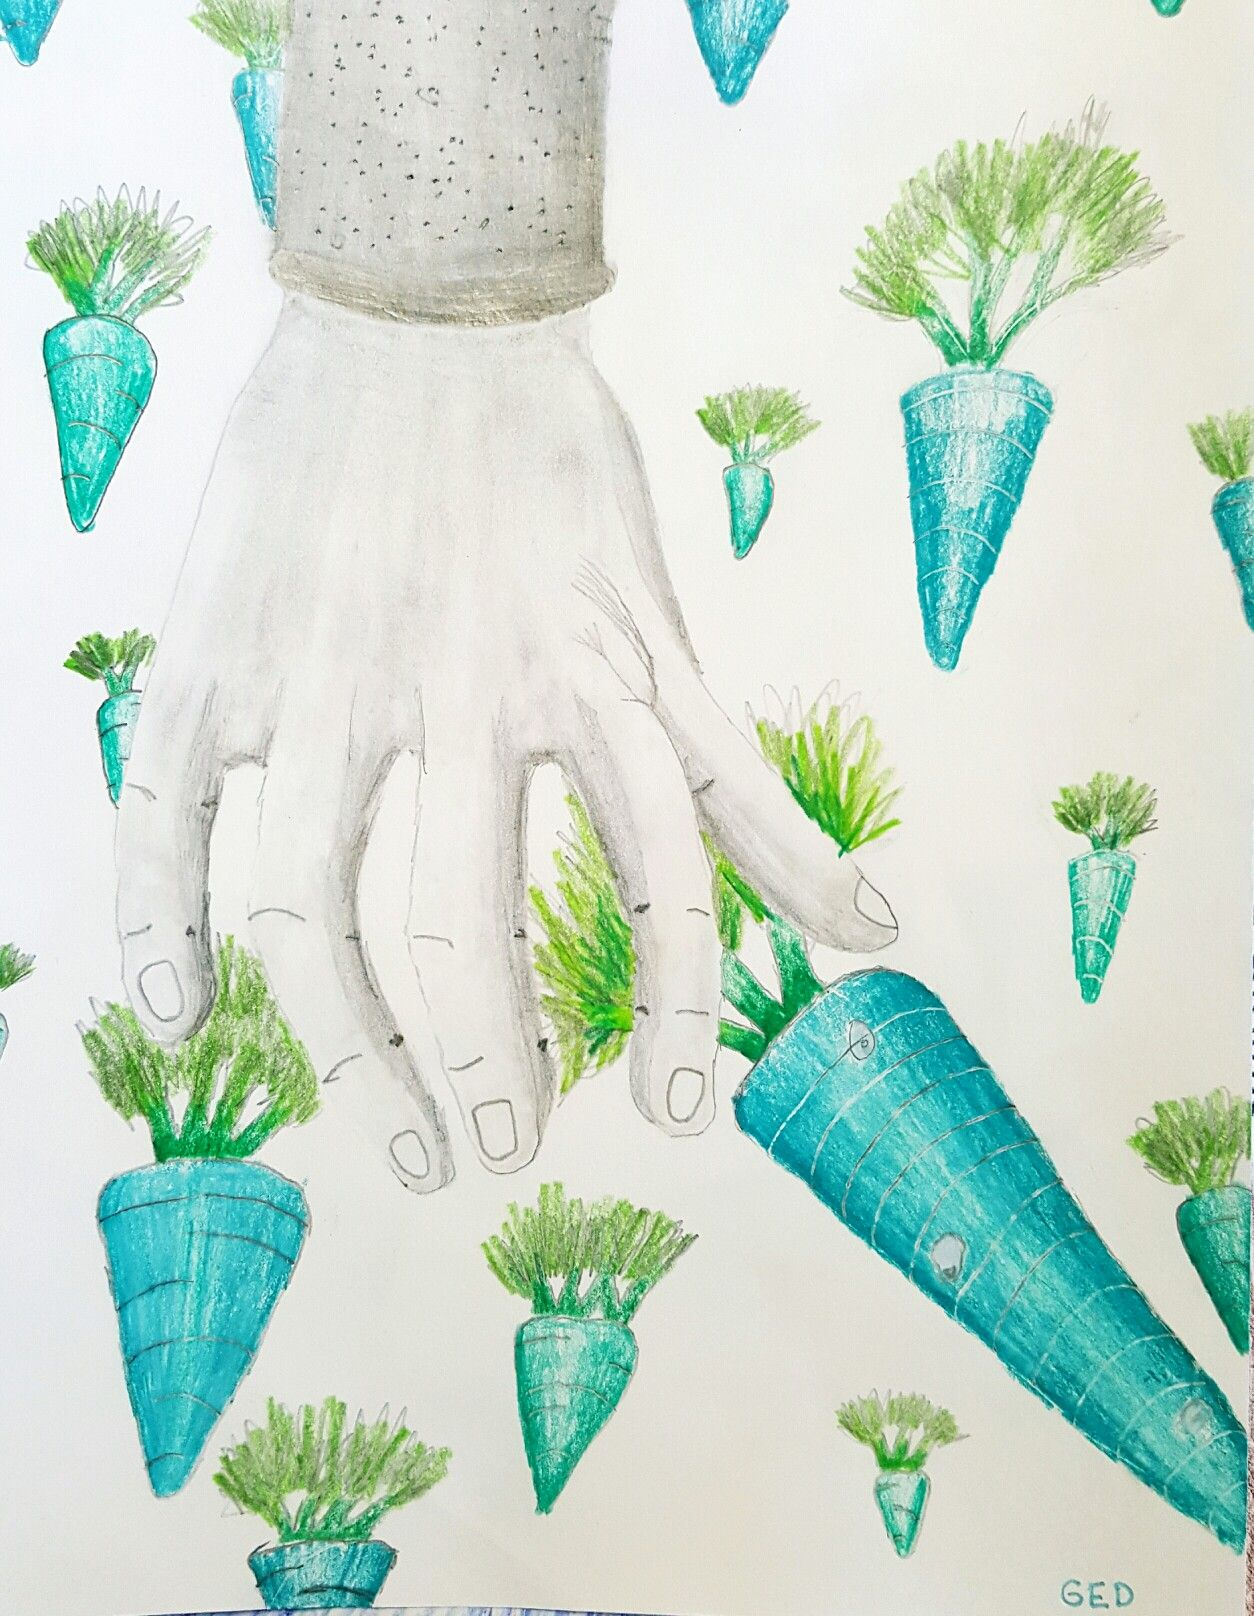 Surreal Handscape 8th Grade Lms Wooley